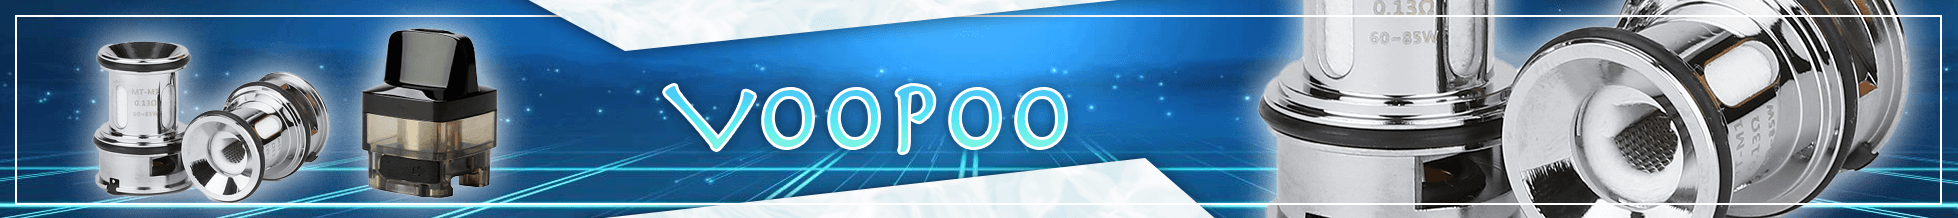 voopoo-category-banner.png